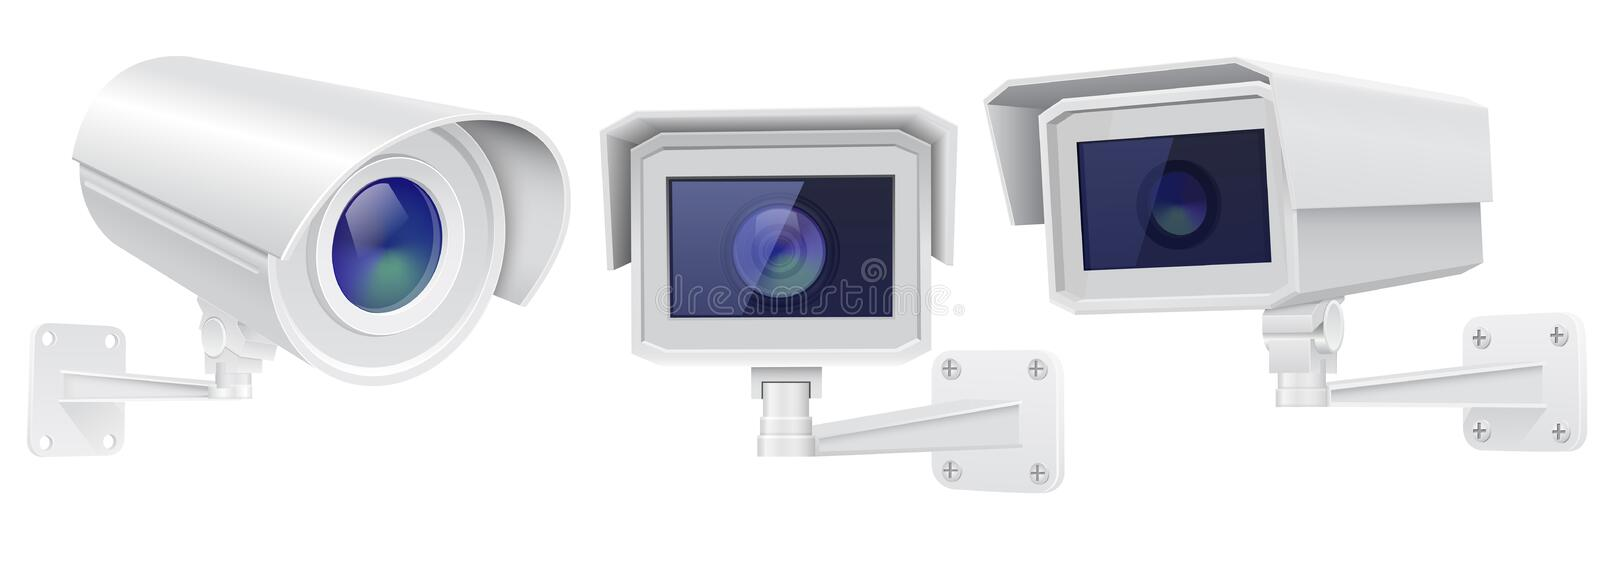 CCTV security camera. Set of surveillance devices. Vector 3d illustration isolated on white background royalty free illustration